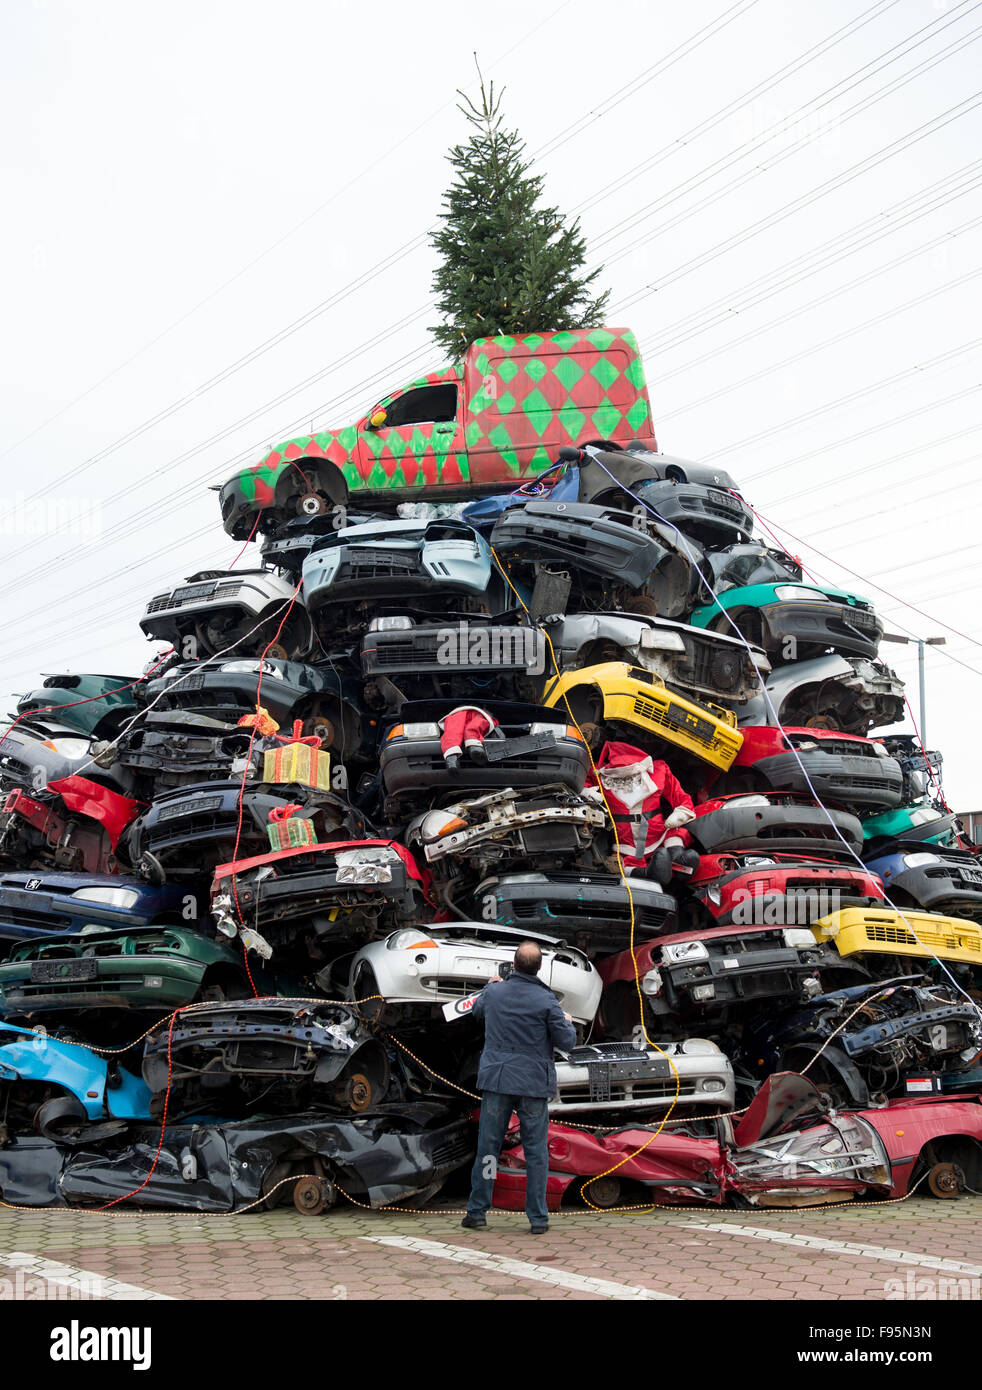 Employees at a car junkyard have decorated a pile of dozens of junk ...